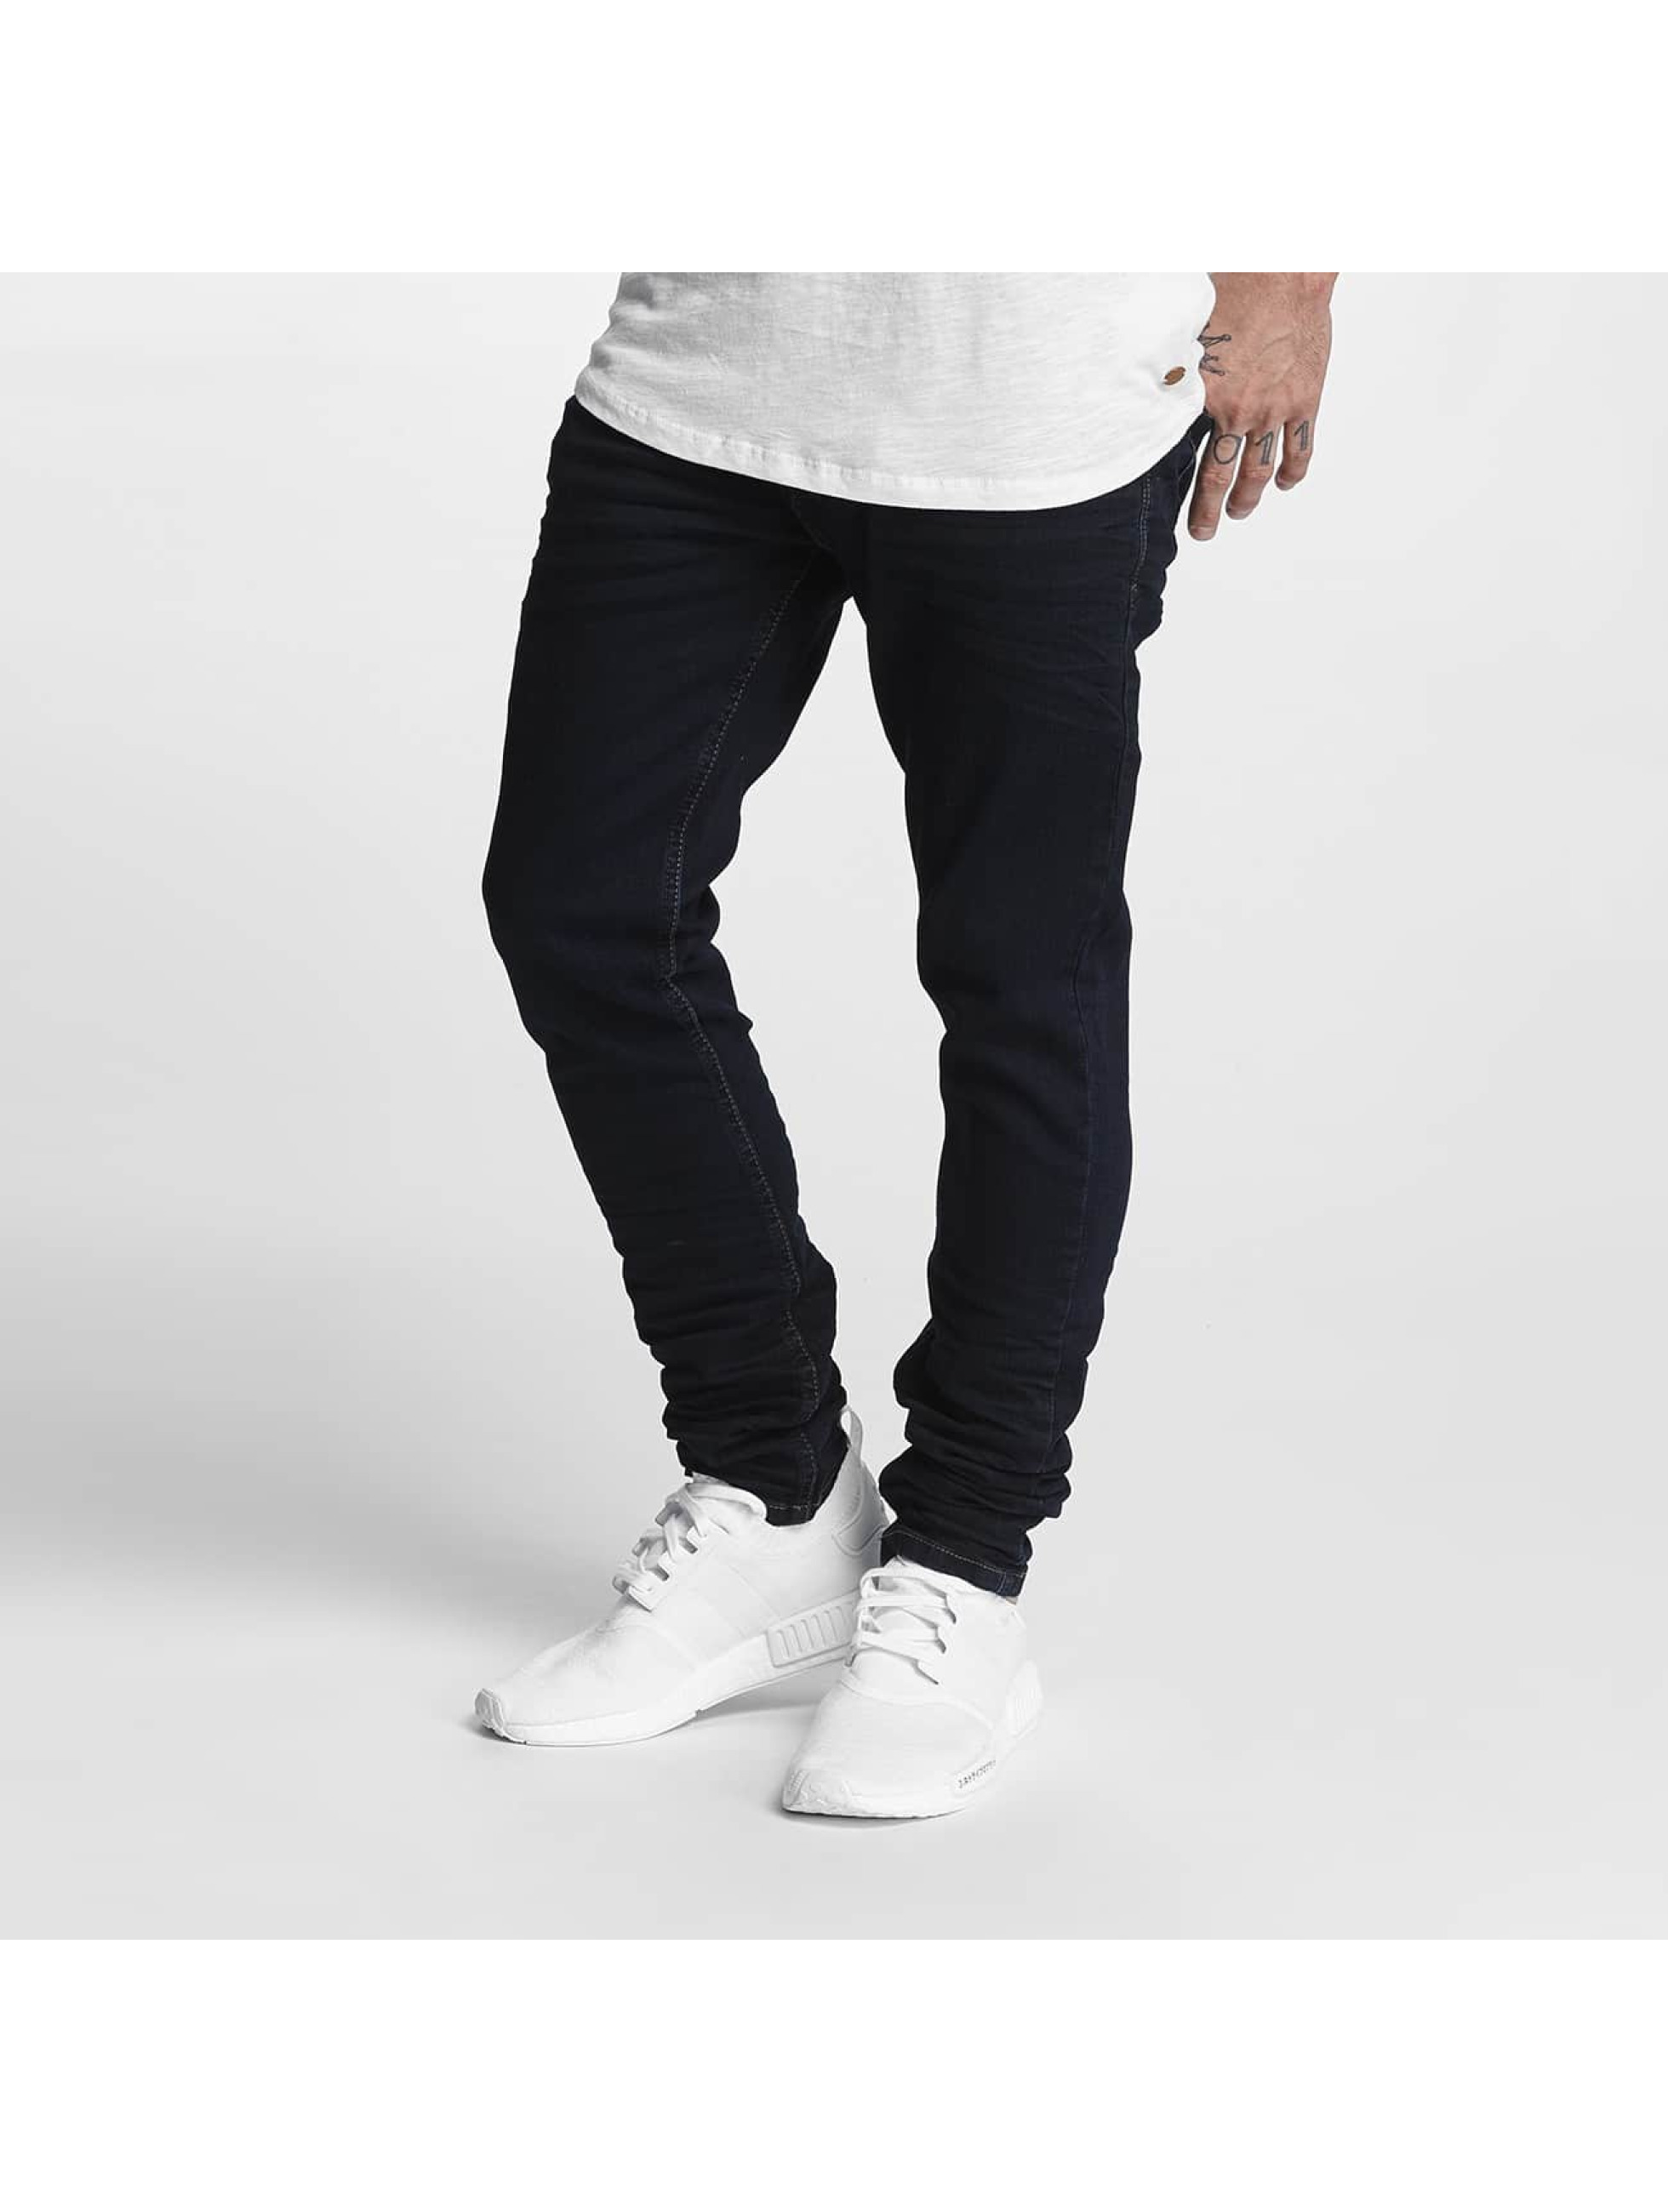 Rocawear-Uomini-Jeans-Antifit-Pune